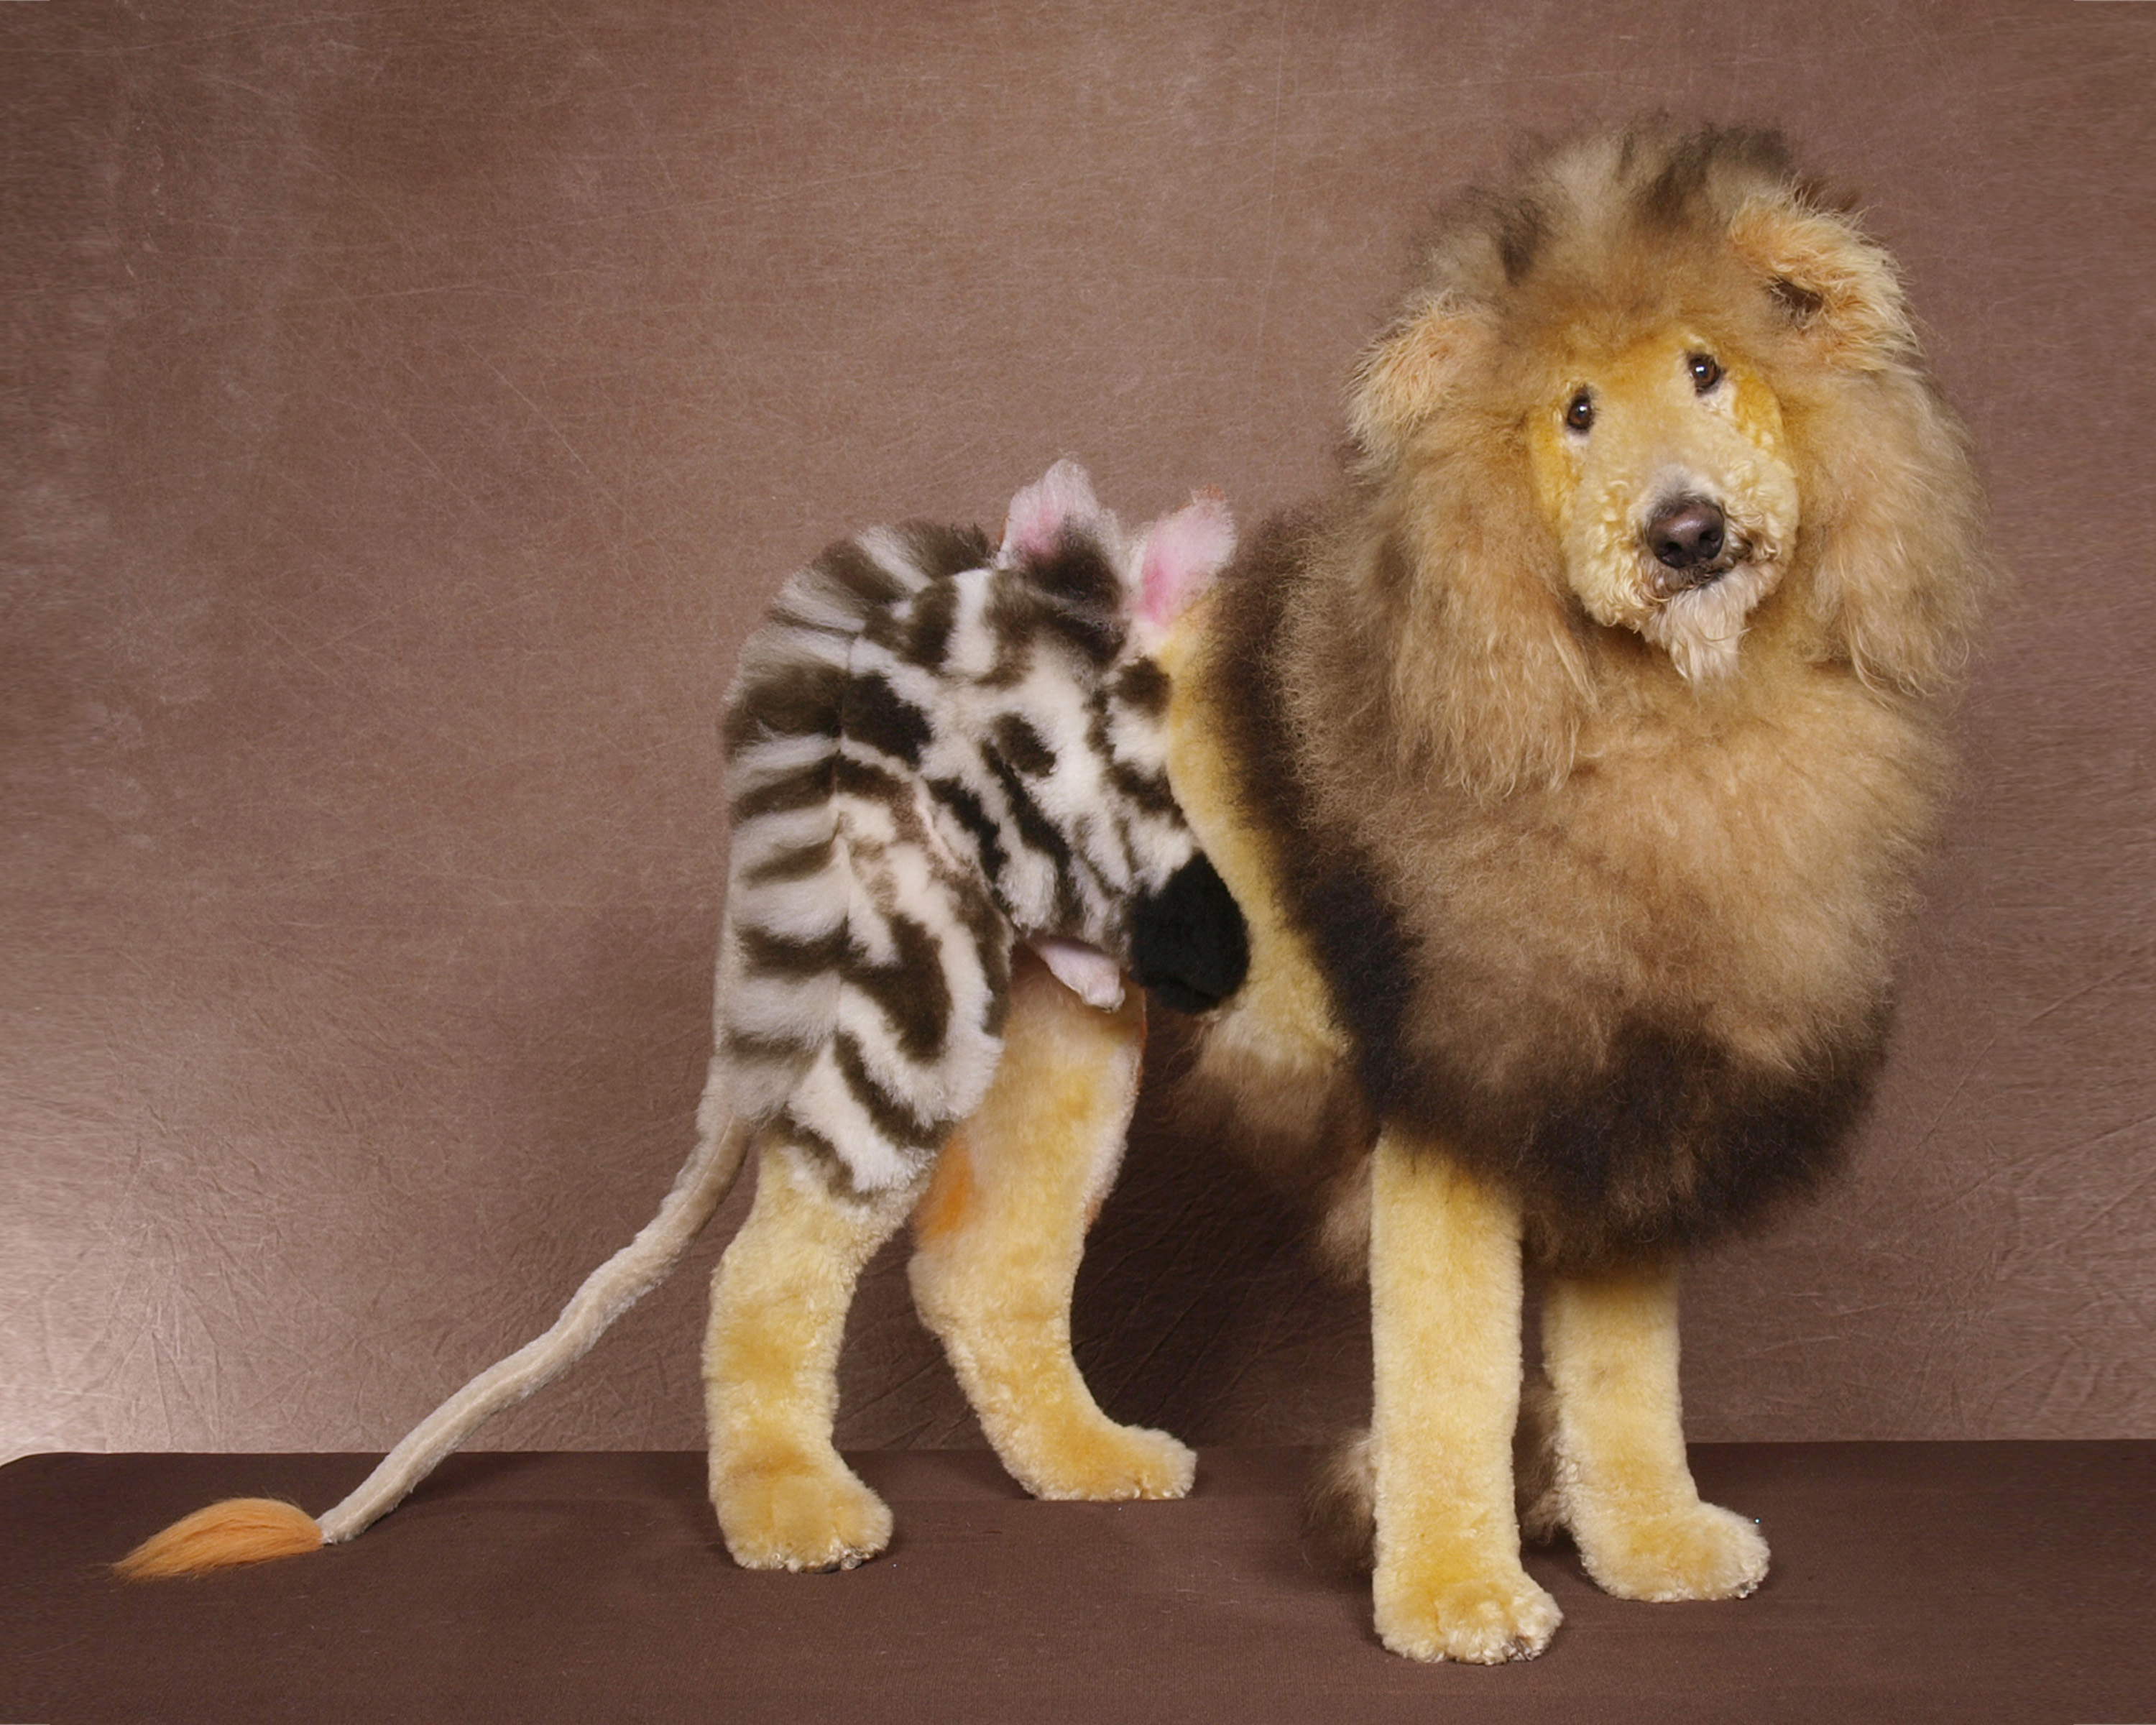 Poodle Lion Haircut photo - 1